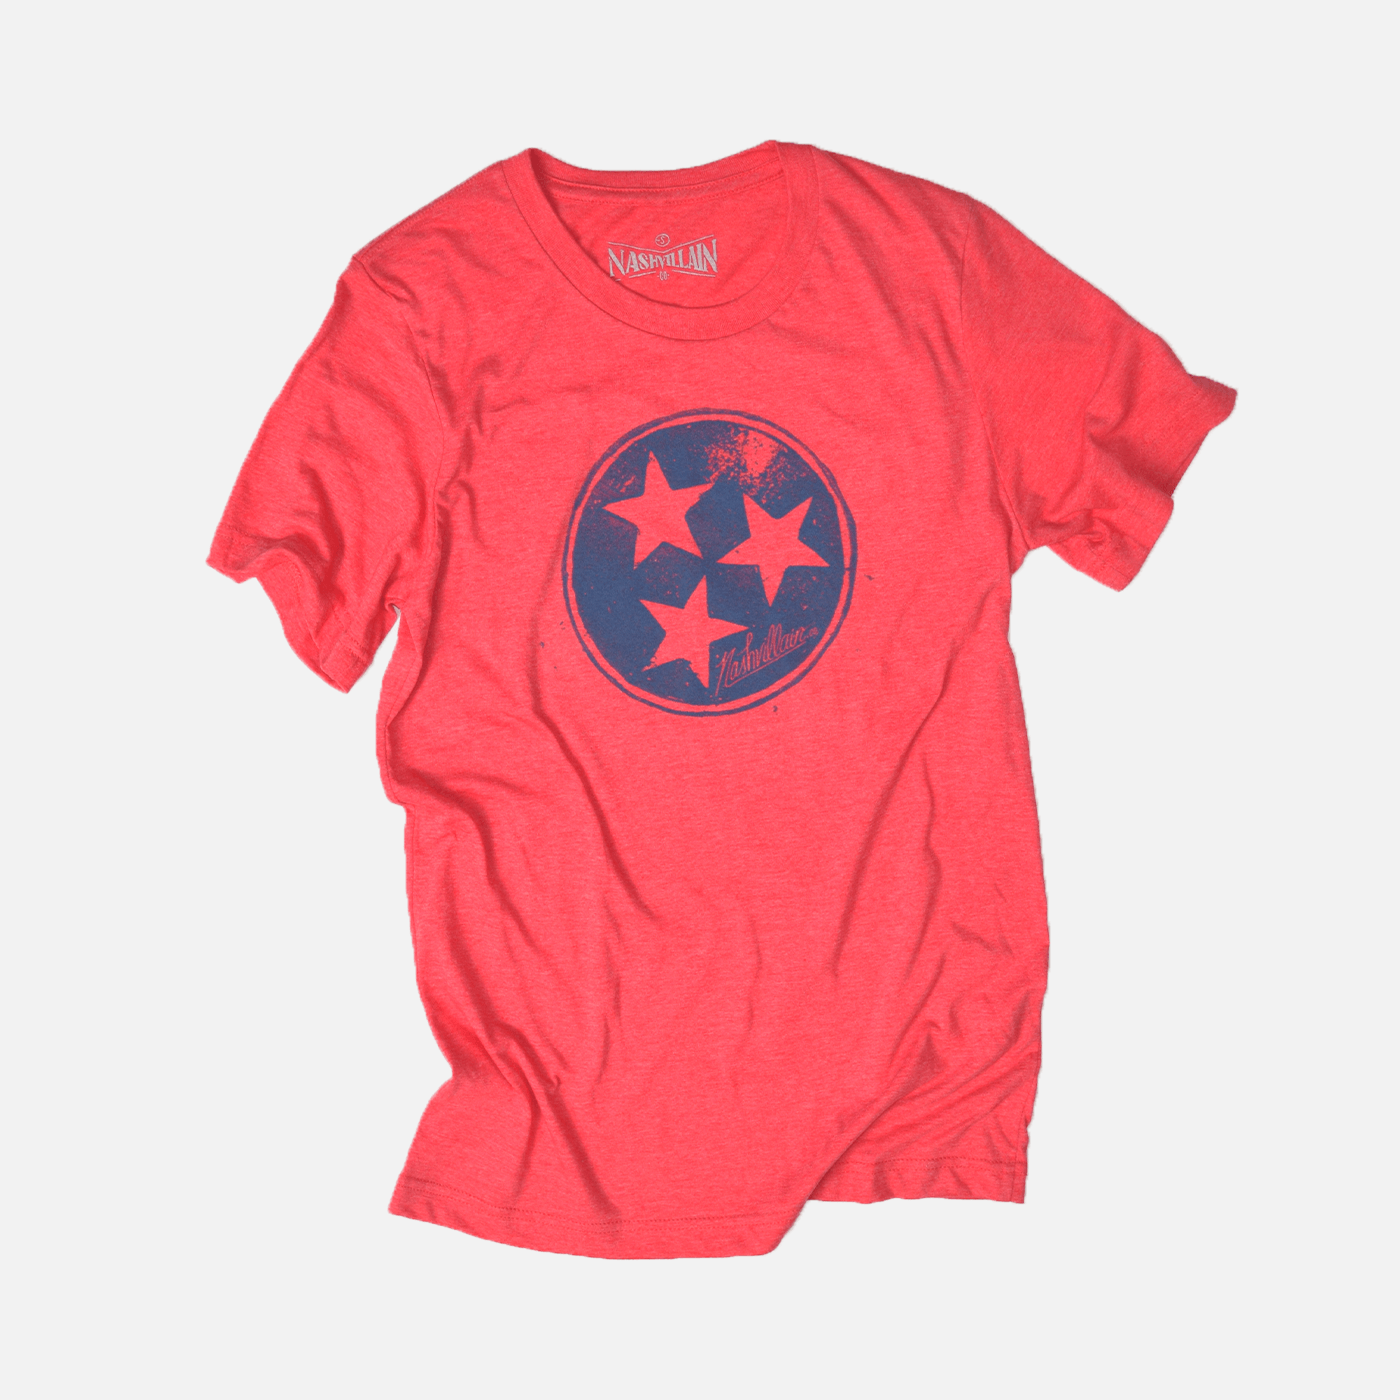 Tristar red tee for Nashvillain Clothing Company in Nashville, Tennessee